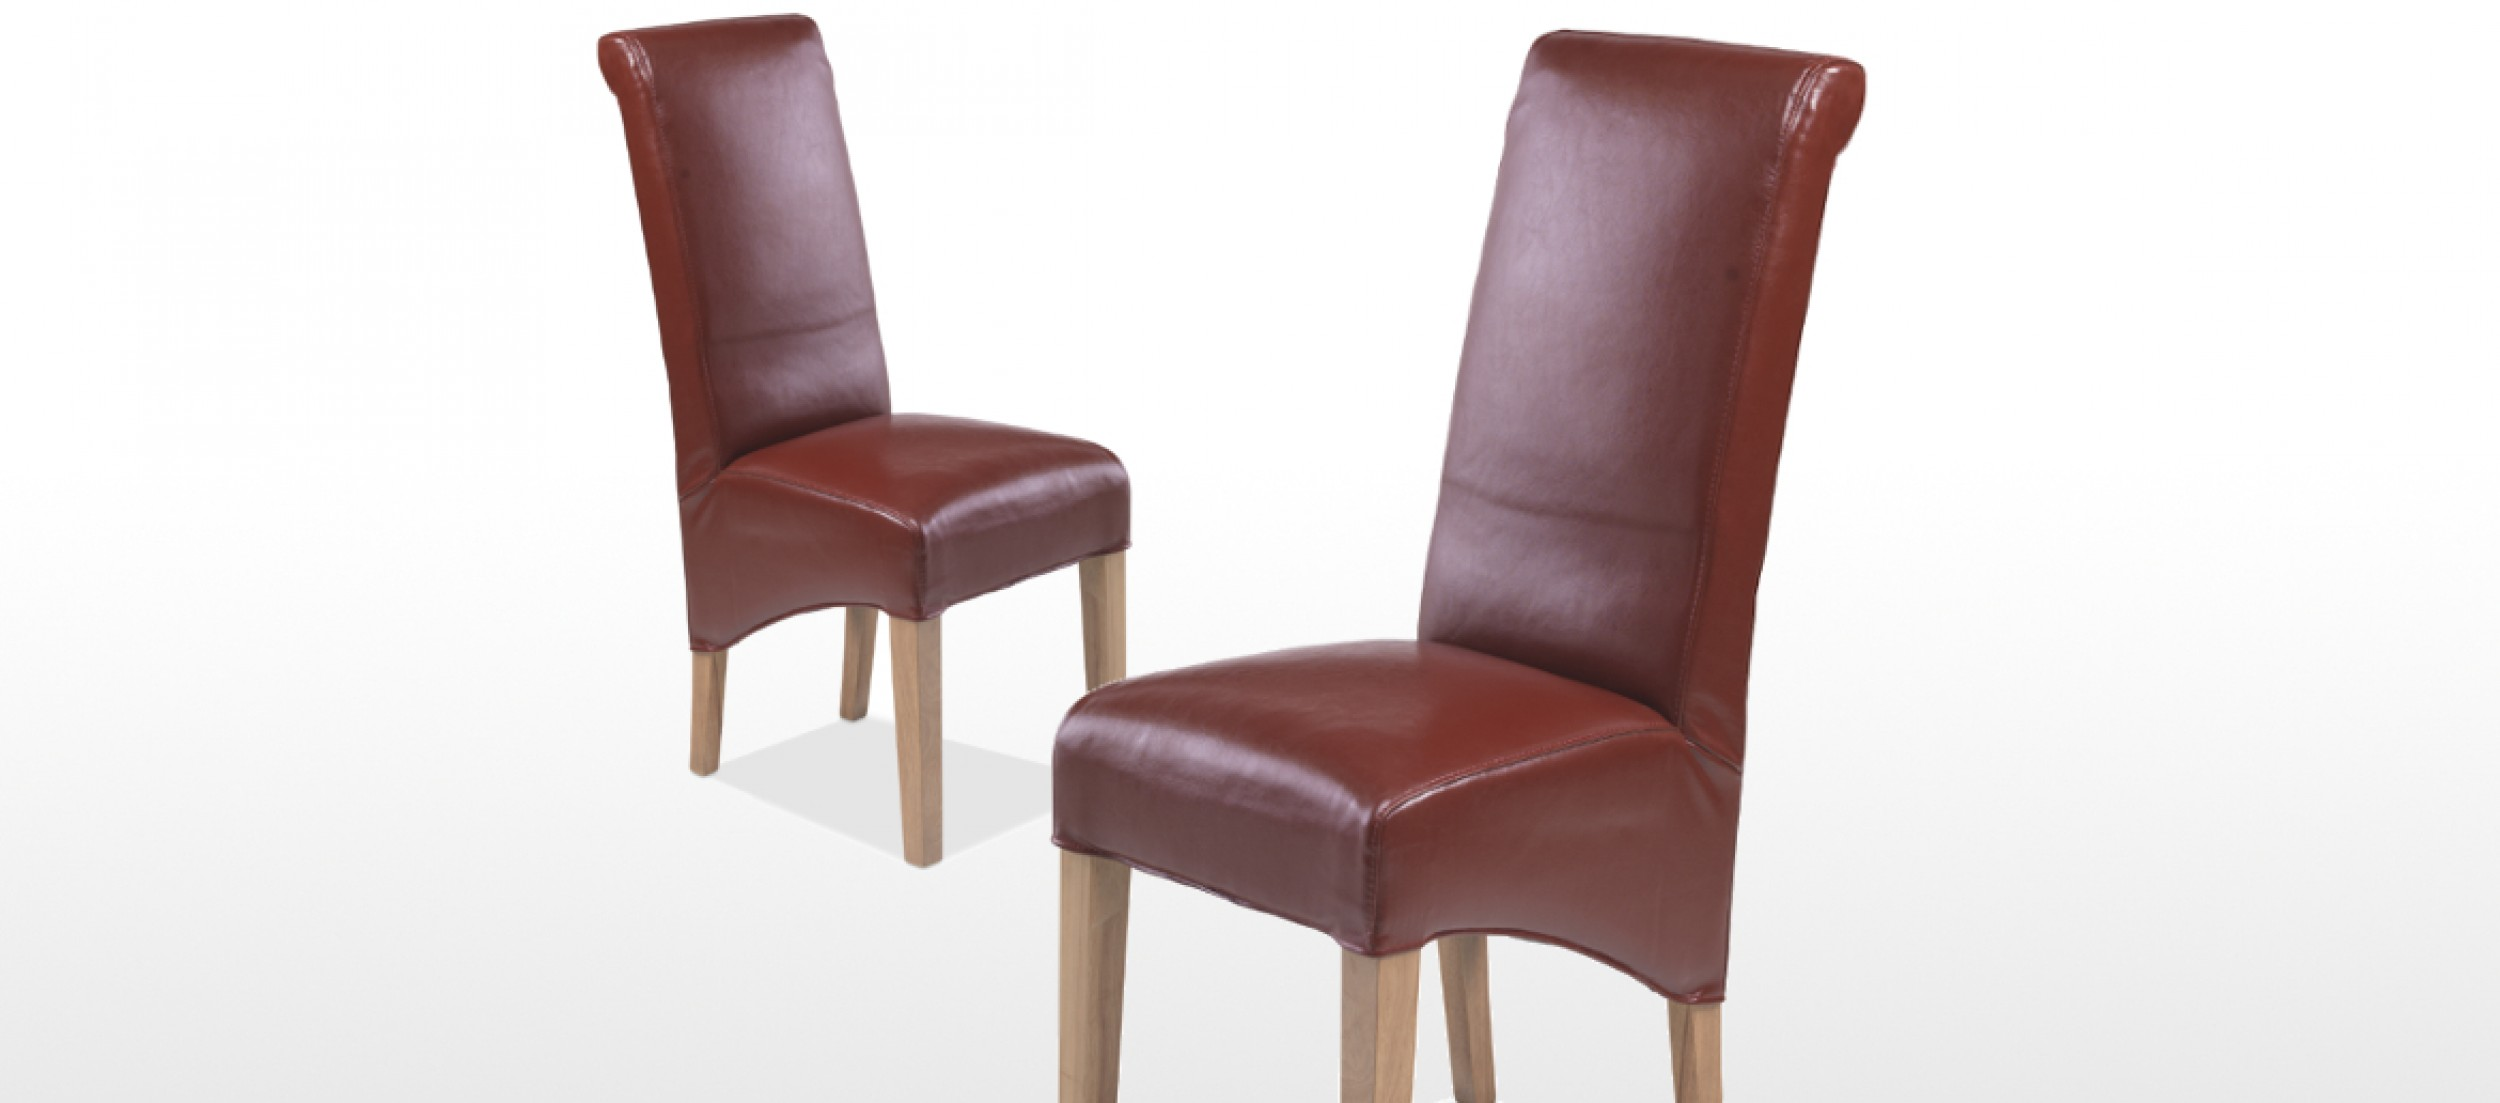 Cube Chairs Cube Oak Bonded Leather Dining Chairs Red Pair